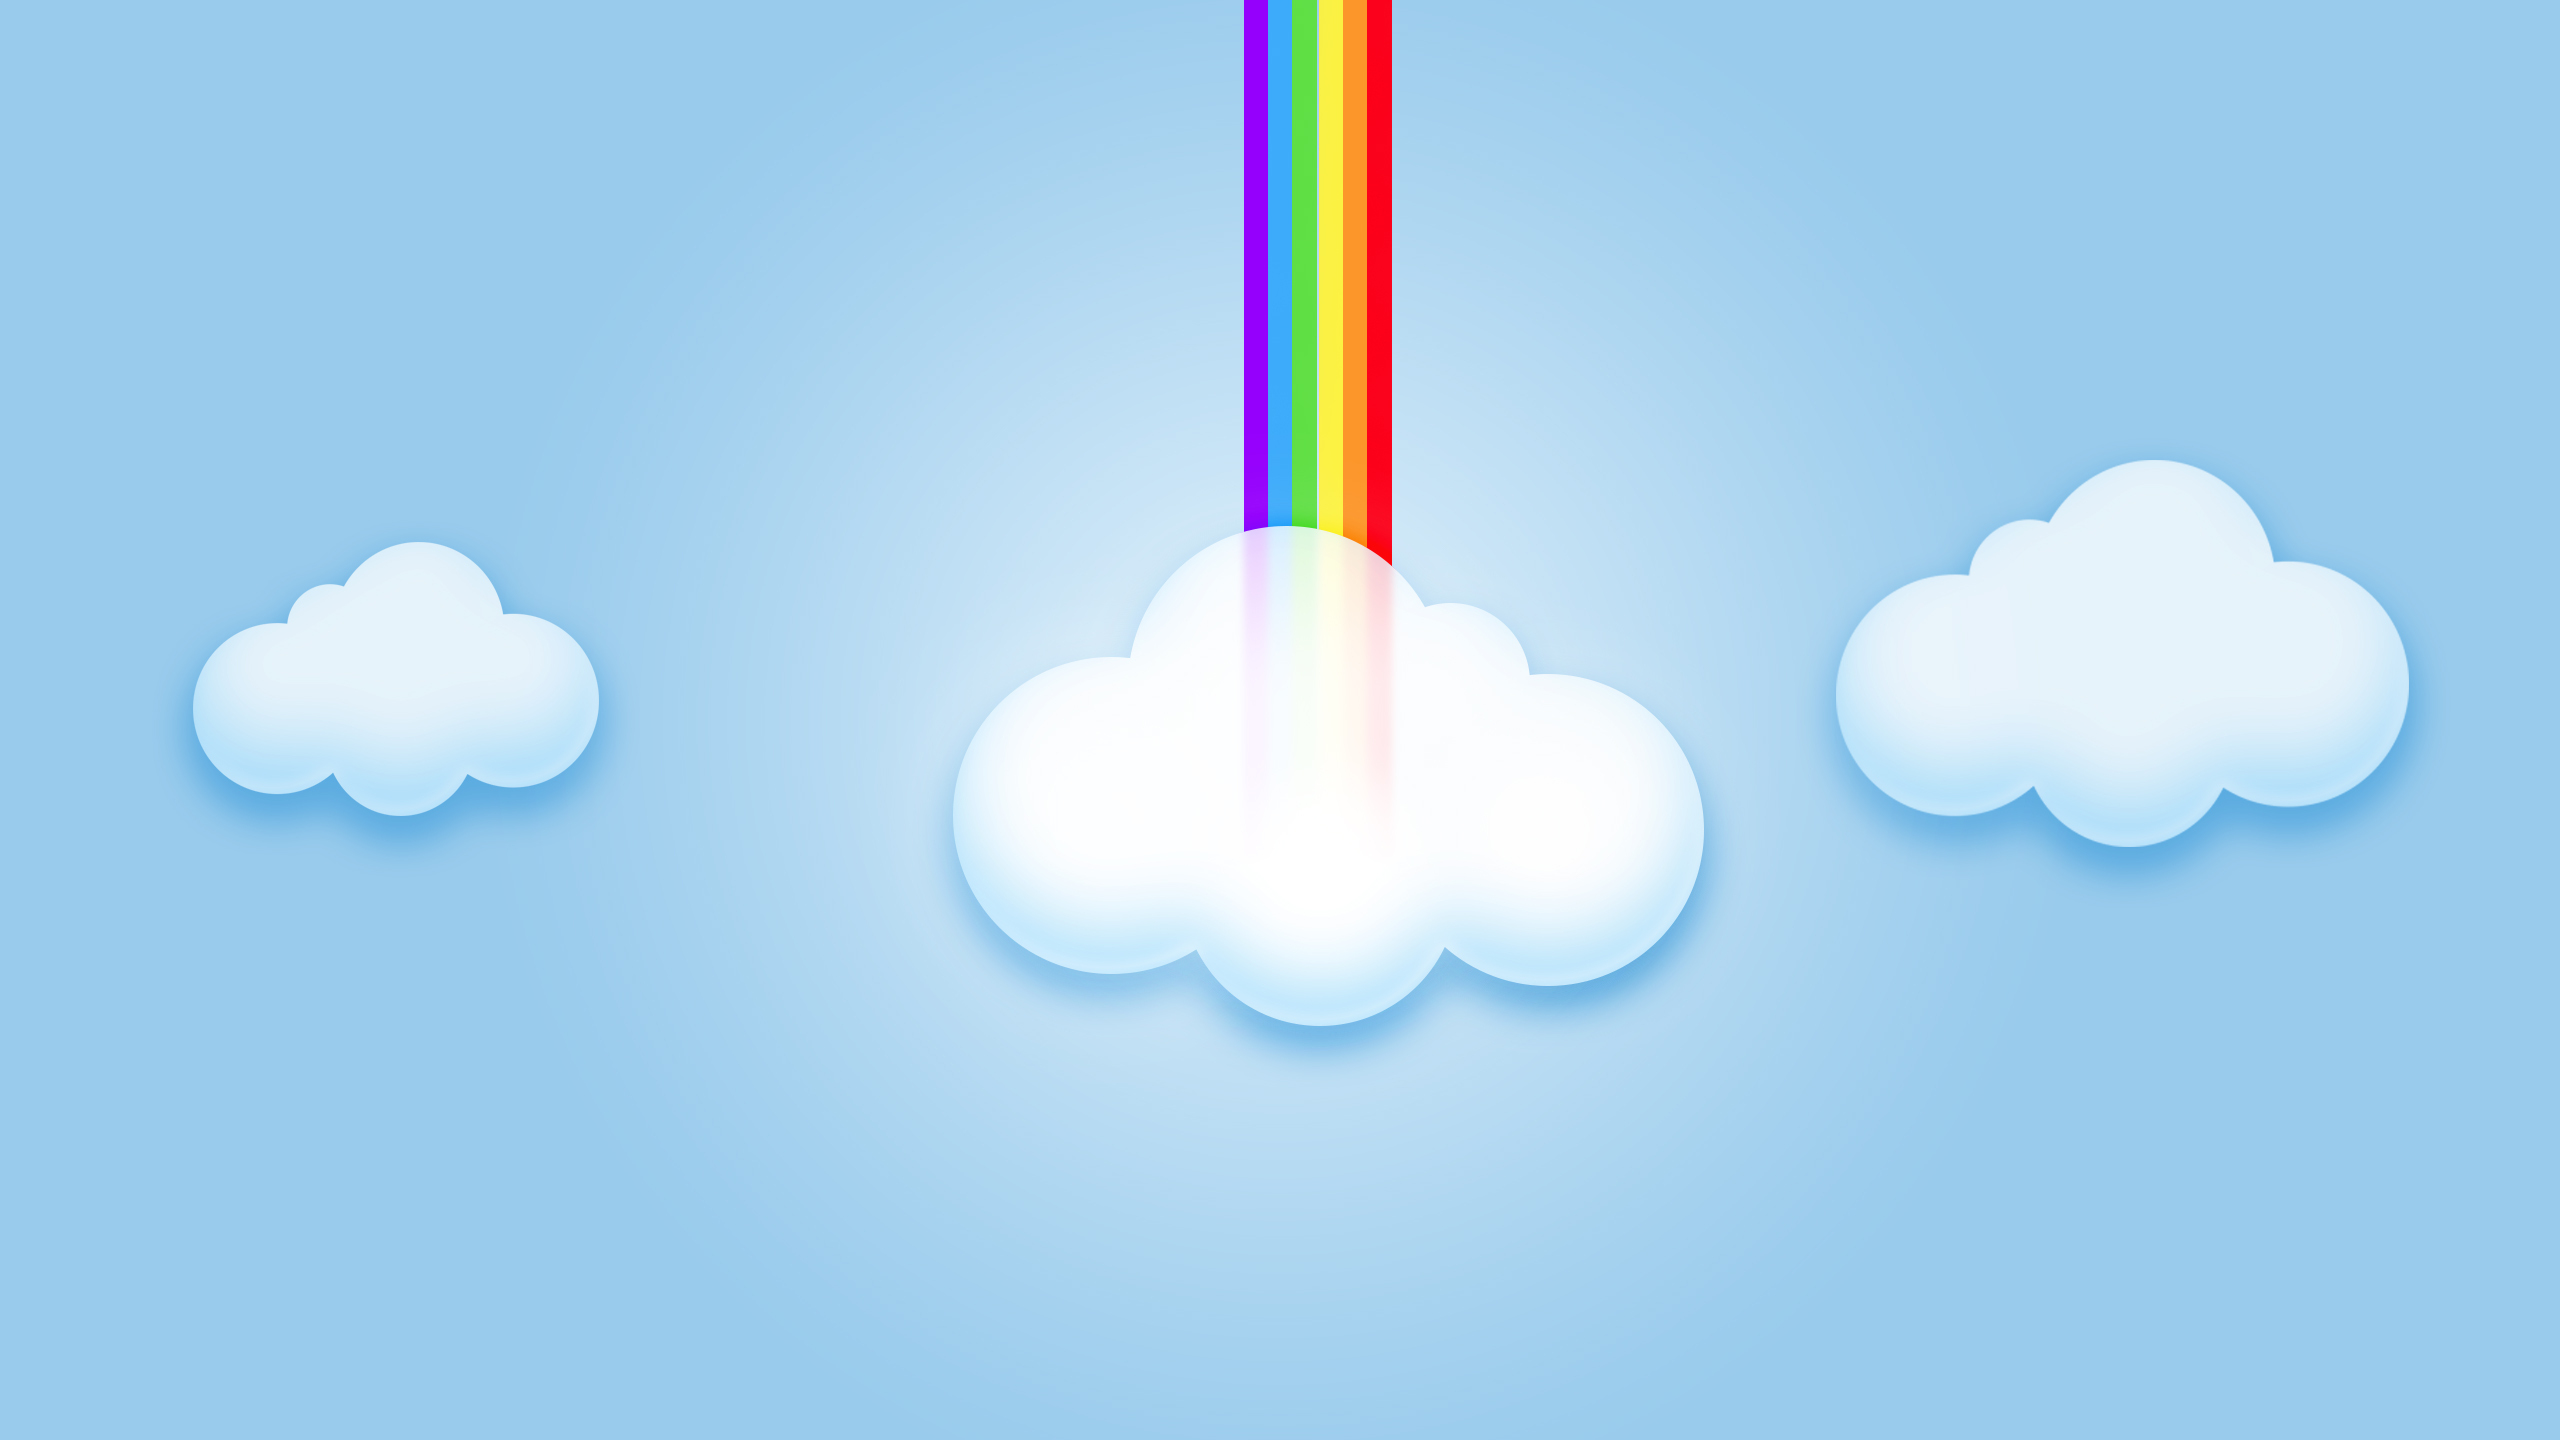 Abstract Rainbow Clouds HD Wallpapers 2560x1440